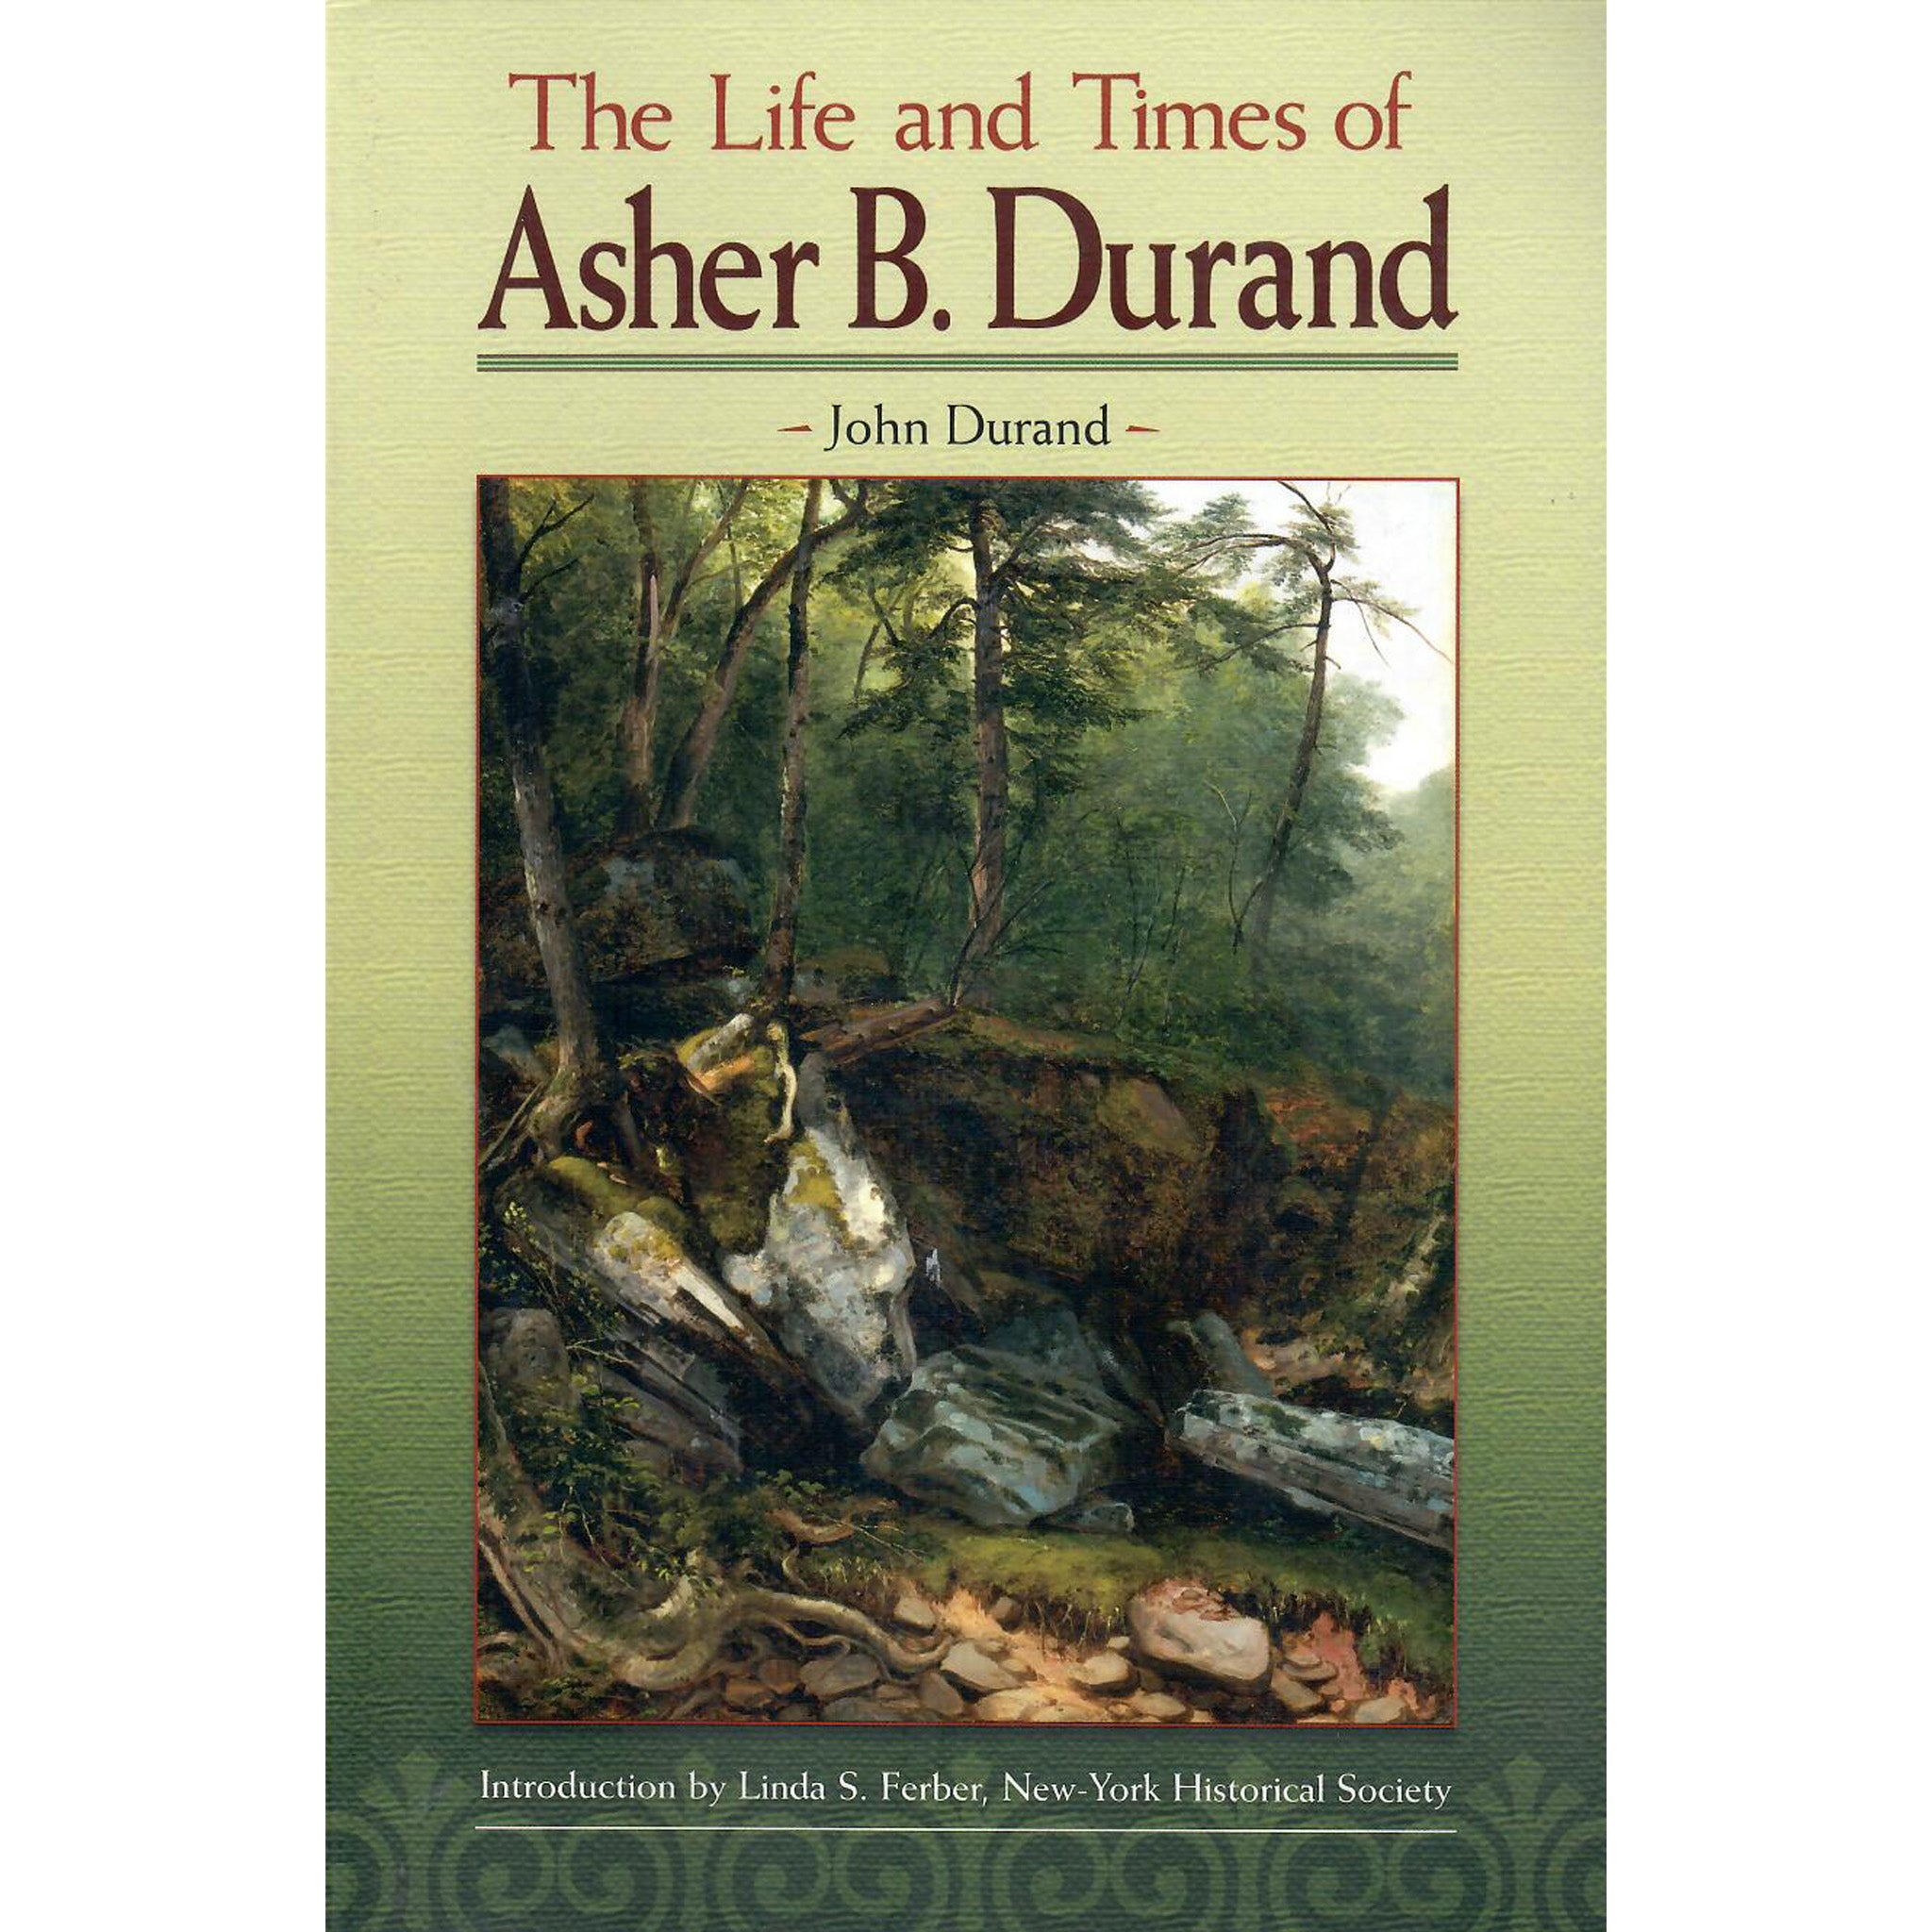 The Life and Times of Asher B. Durand